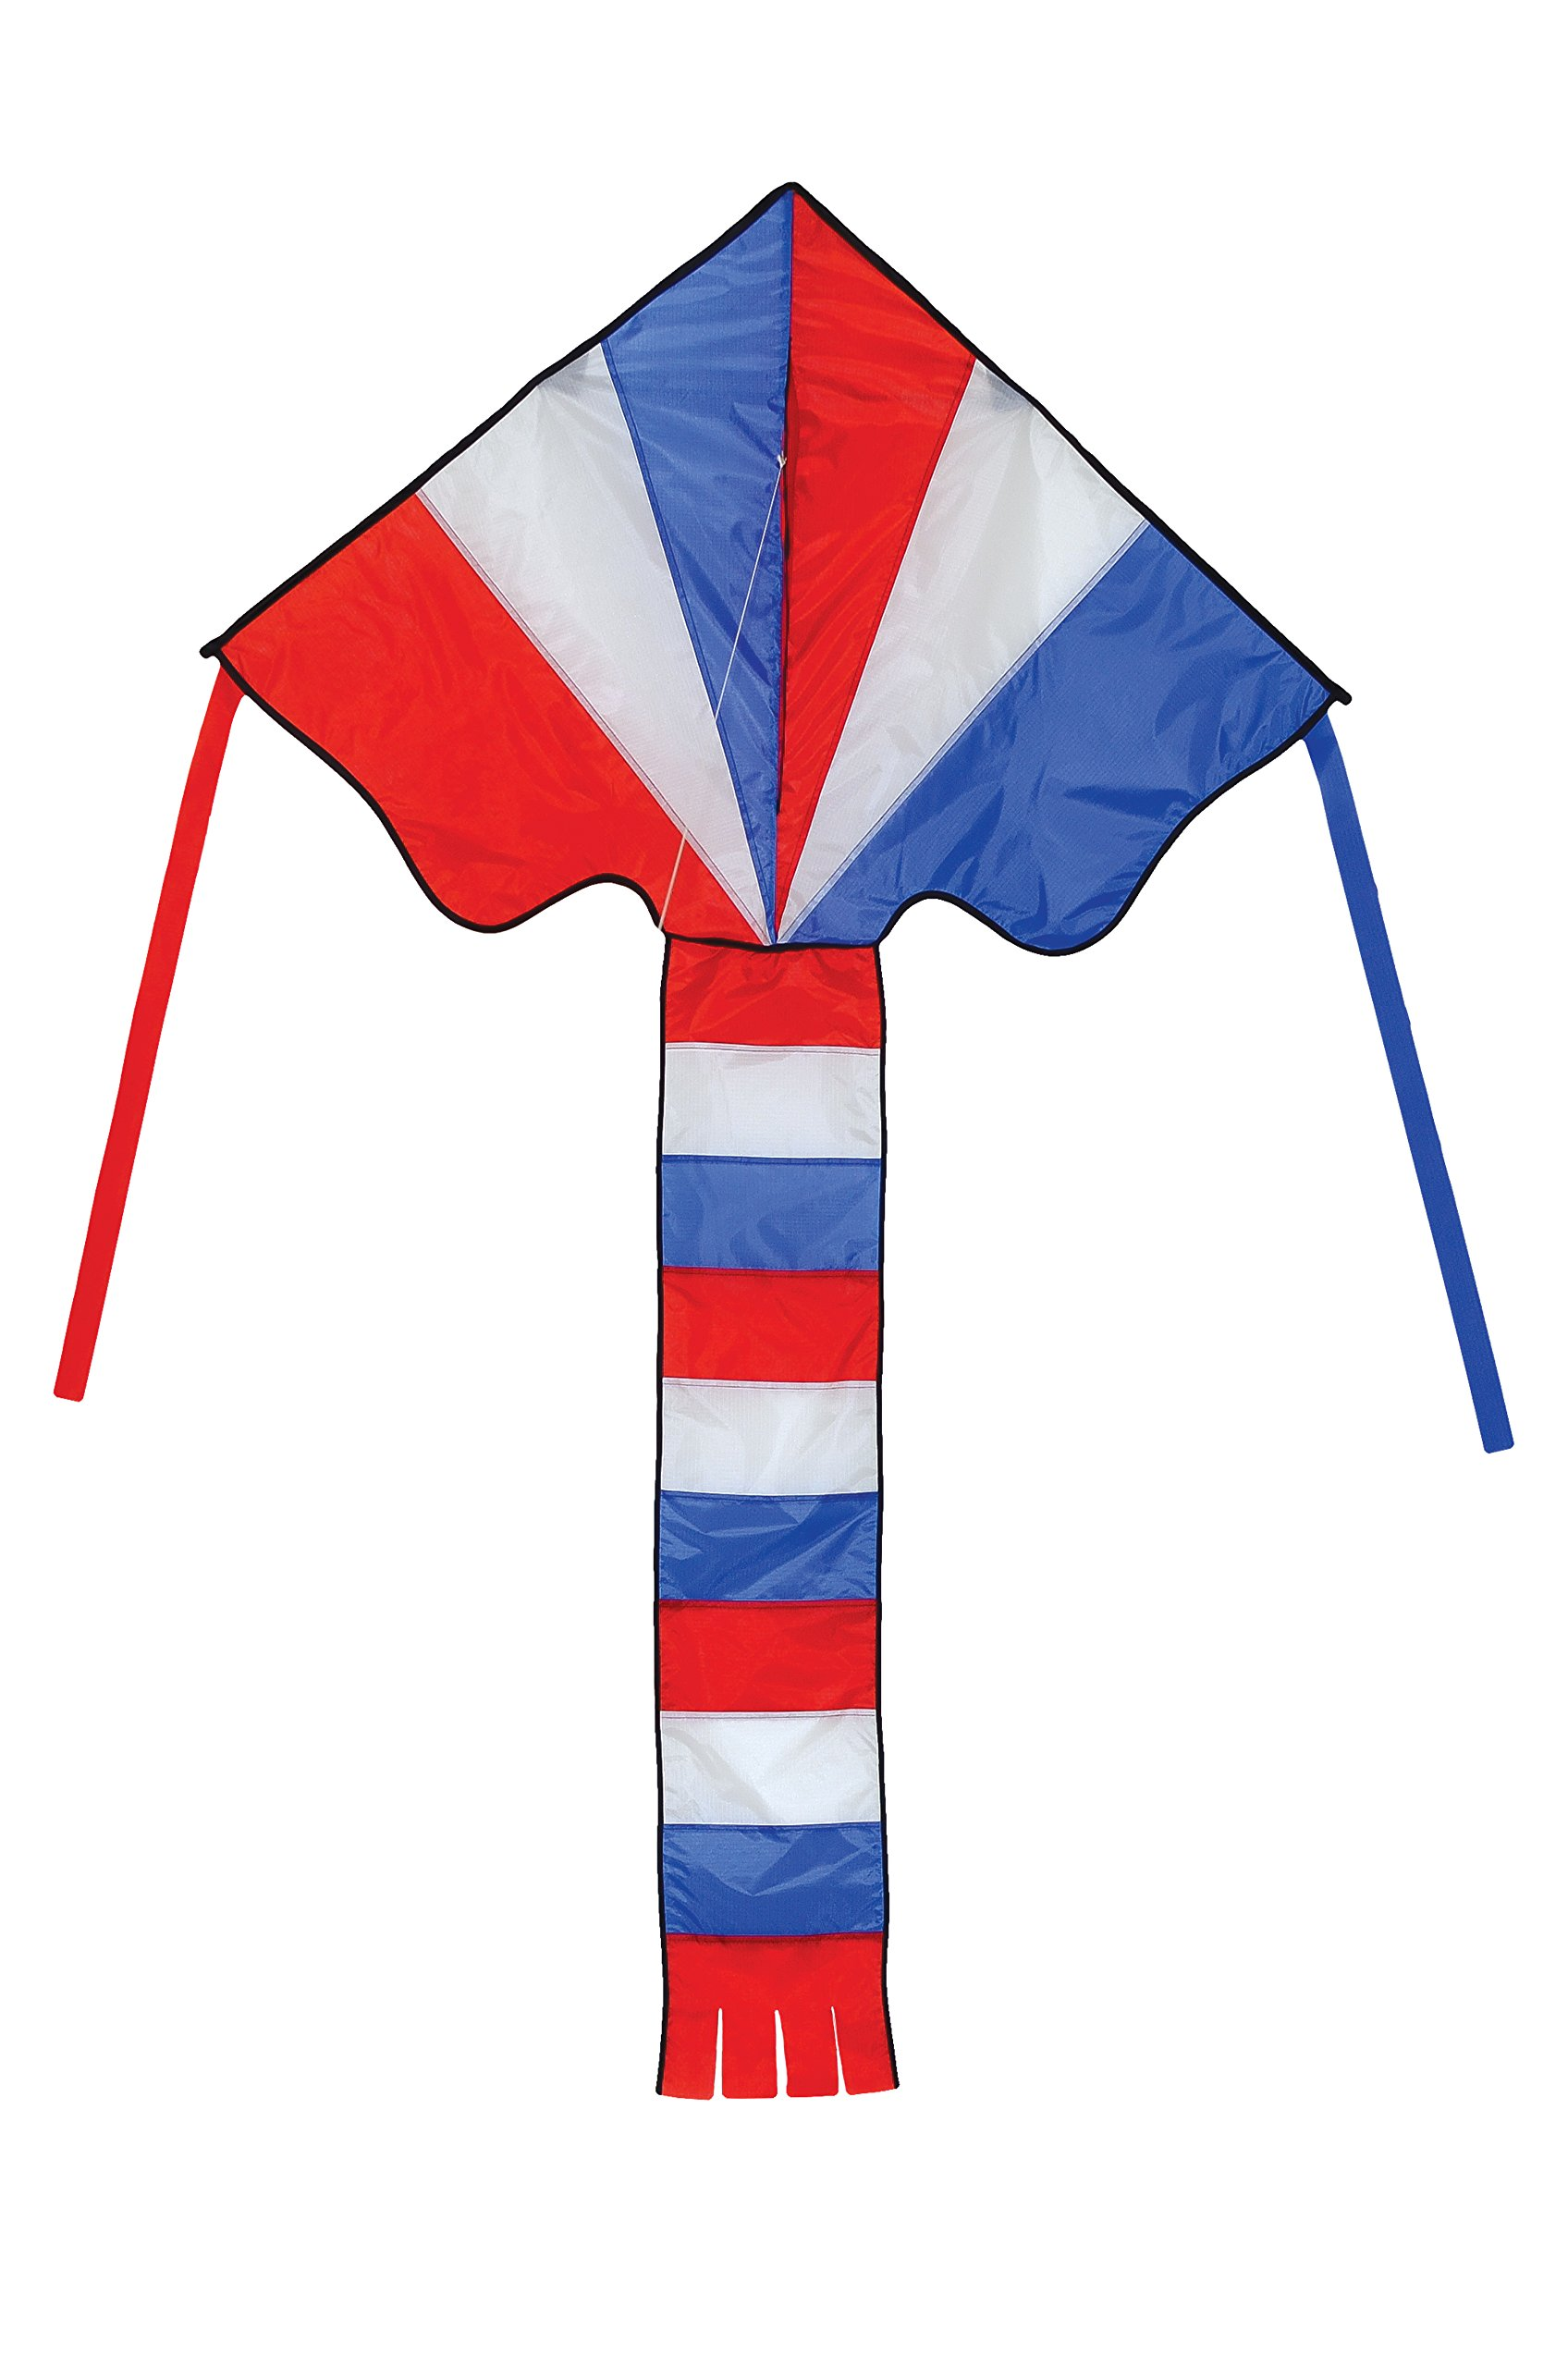 In the Breeze Red, White & Blue 46 Inch Fly-Hi Delta Kite - Single Line - Ripstop Fabric - Includes Kite Line and Bag - Great Beginner Kite